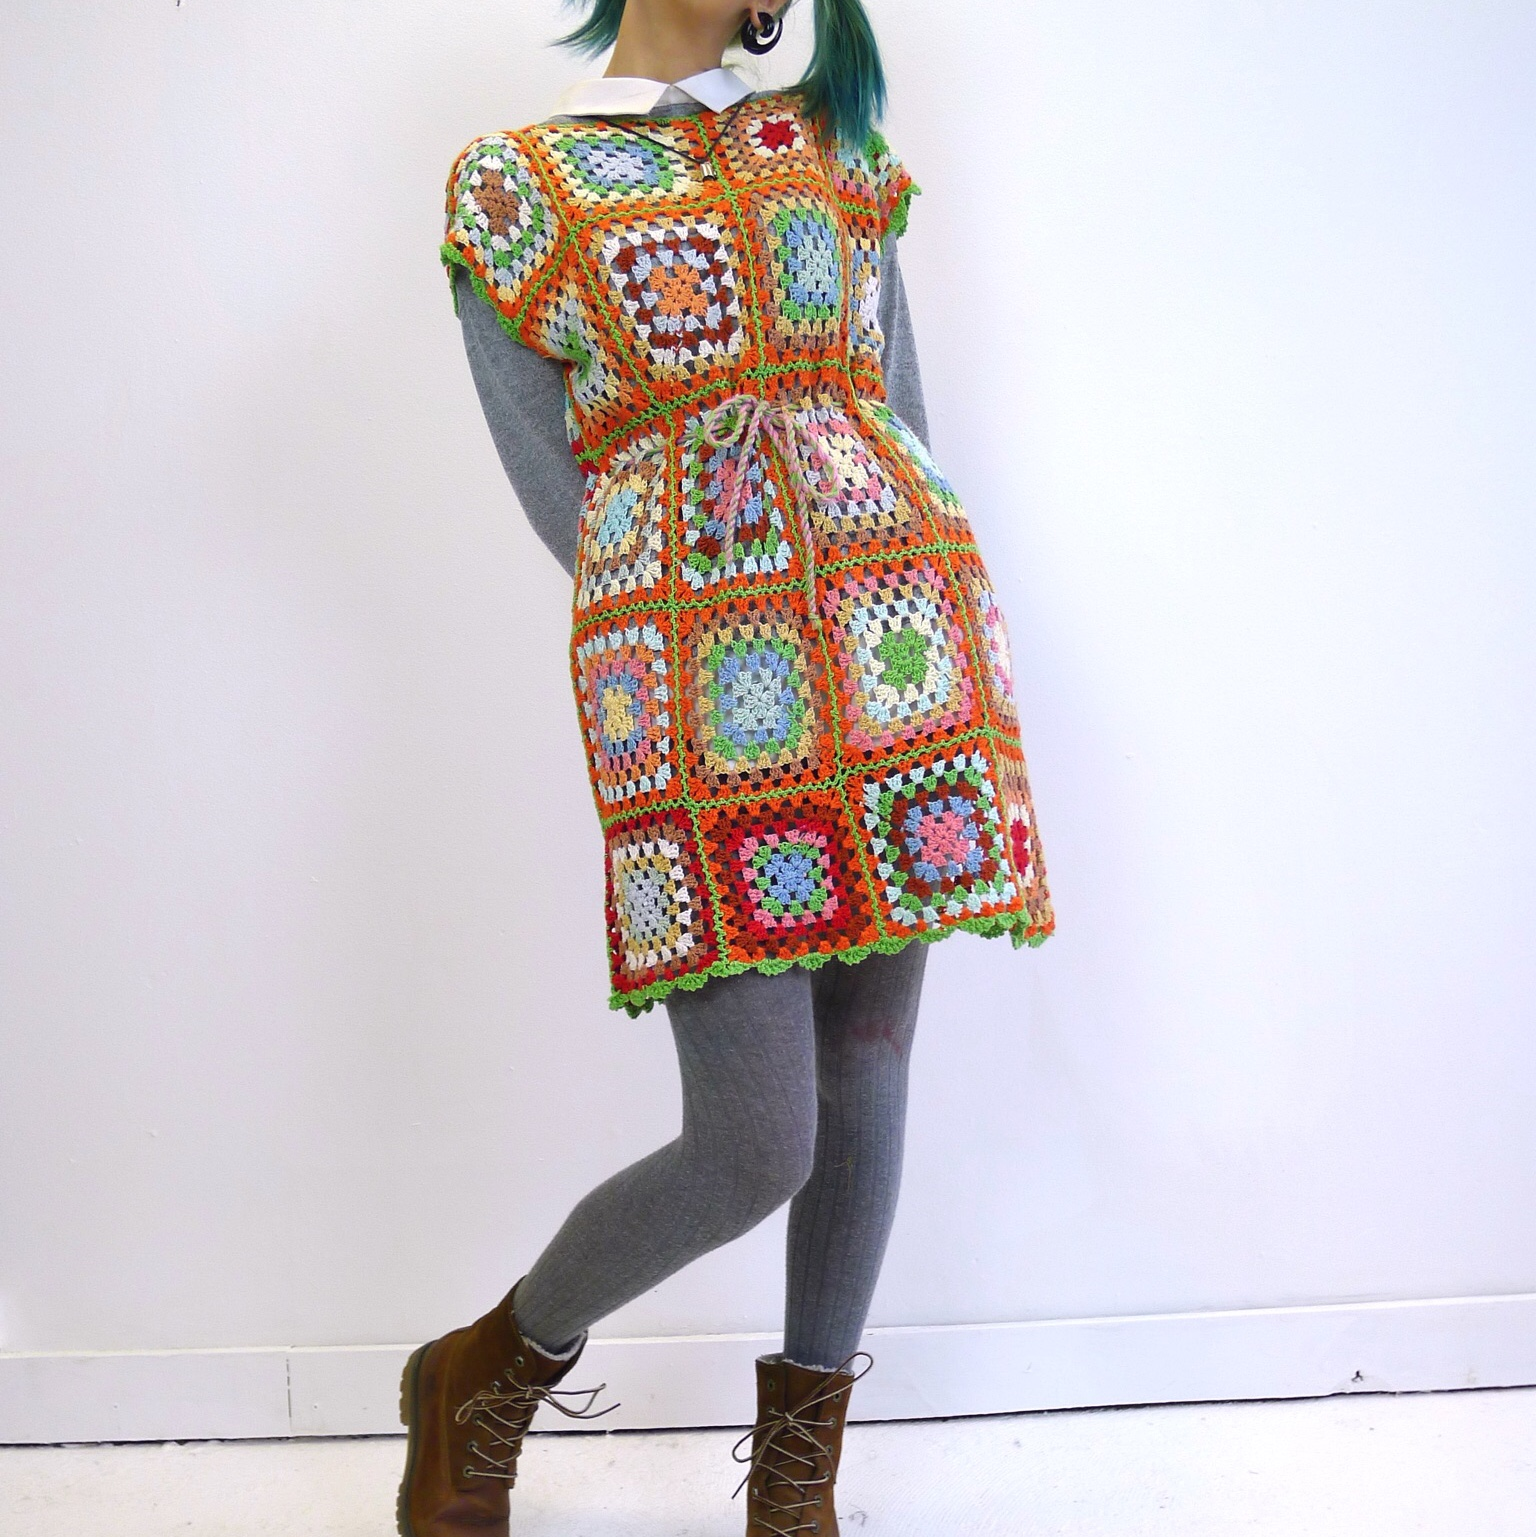 Product Image 1 - Hand crocheted granny square dress.